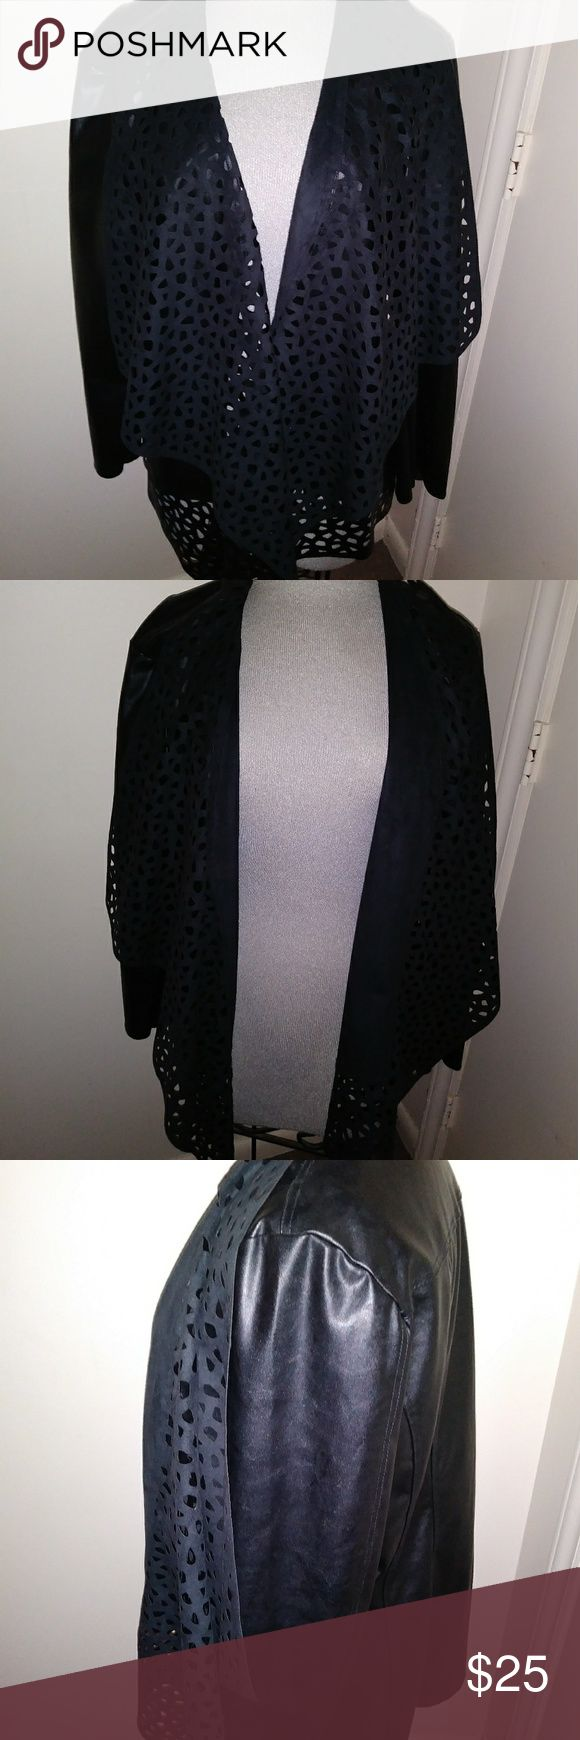 "Faux Leather Jacket SALE !!! This Jacket is ""BRAND NEW"" Super Cute and Lightweight.. The inside is lined with a soft suede material....... Size 2x amx Jackets & Coats"